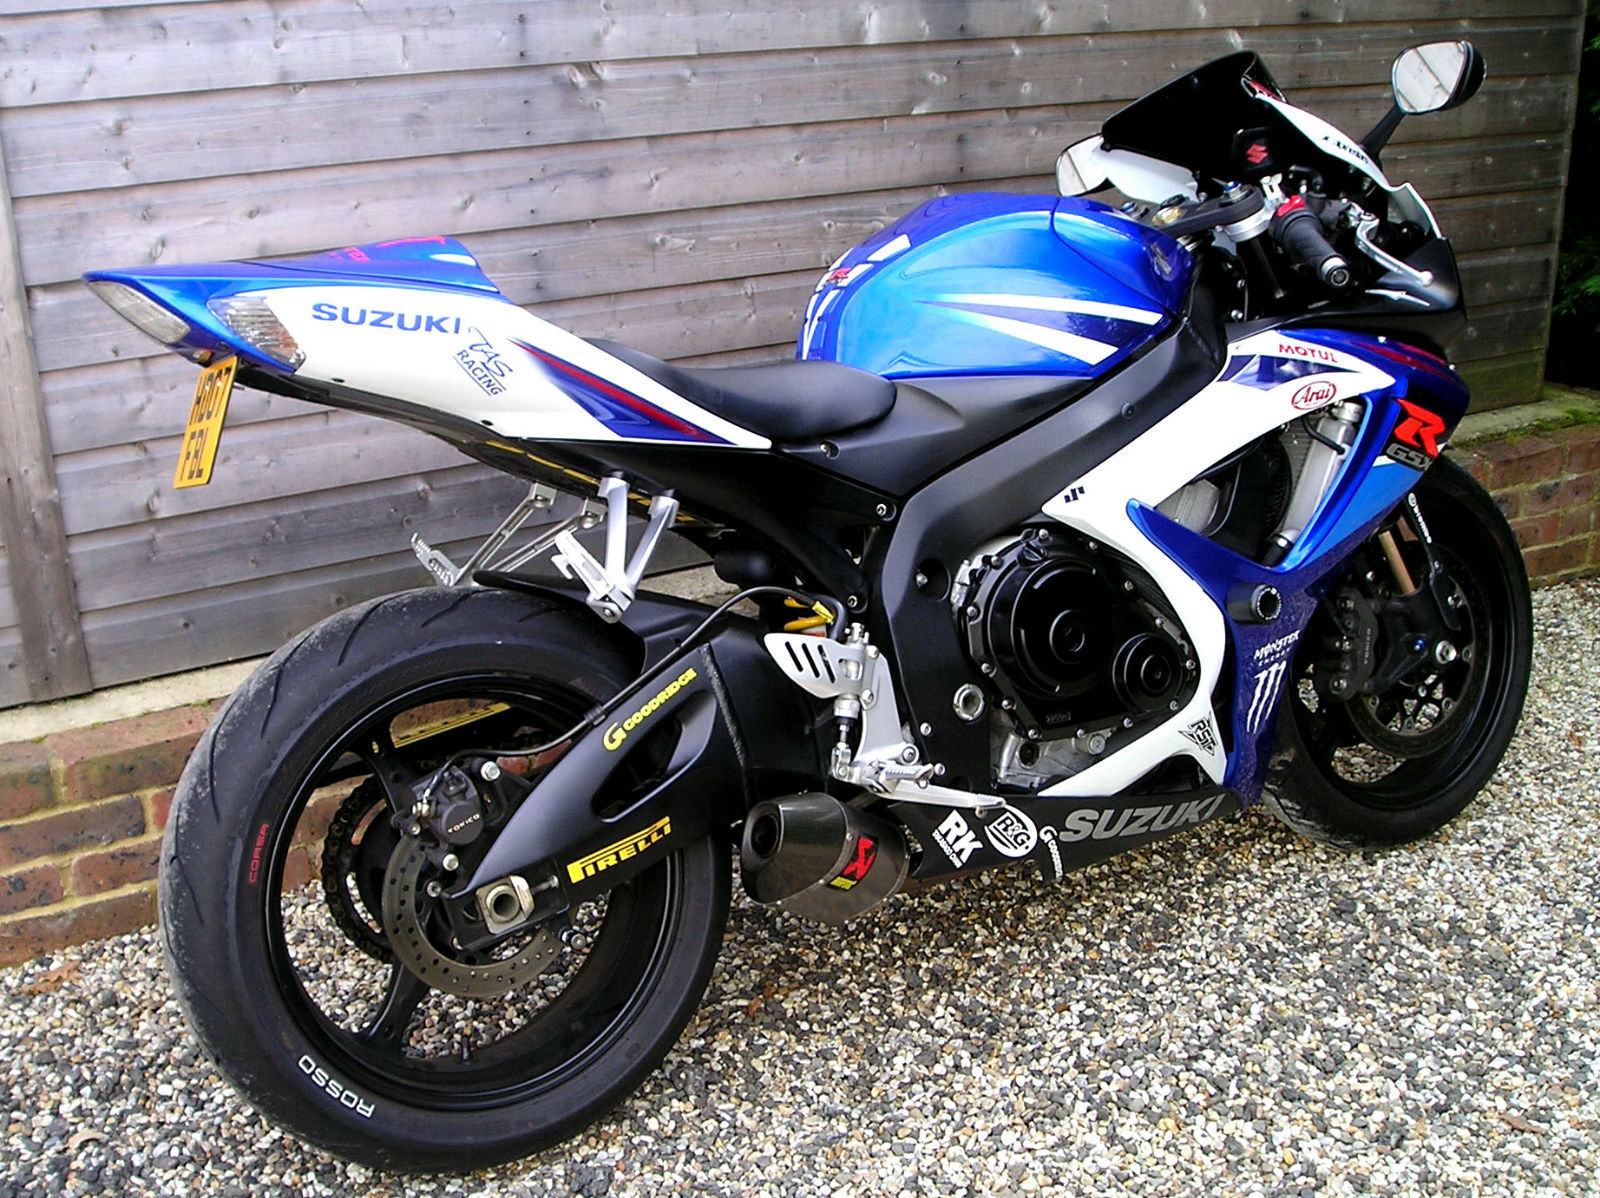 suzuki gsx r 750 k7 nice options fitted with akrapovic. Black Bedroom Furniture Sets. Home Design Ideas